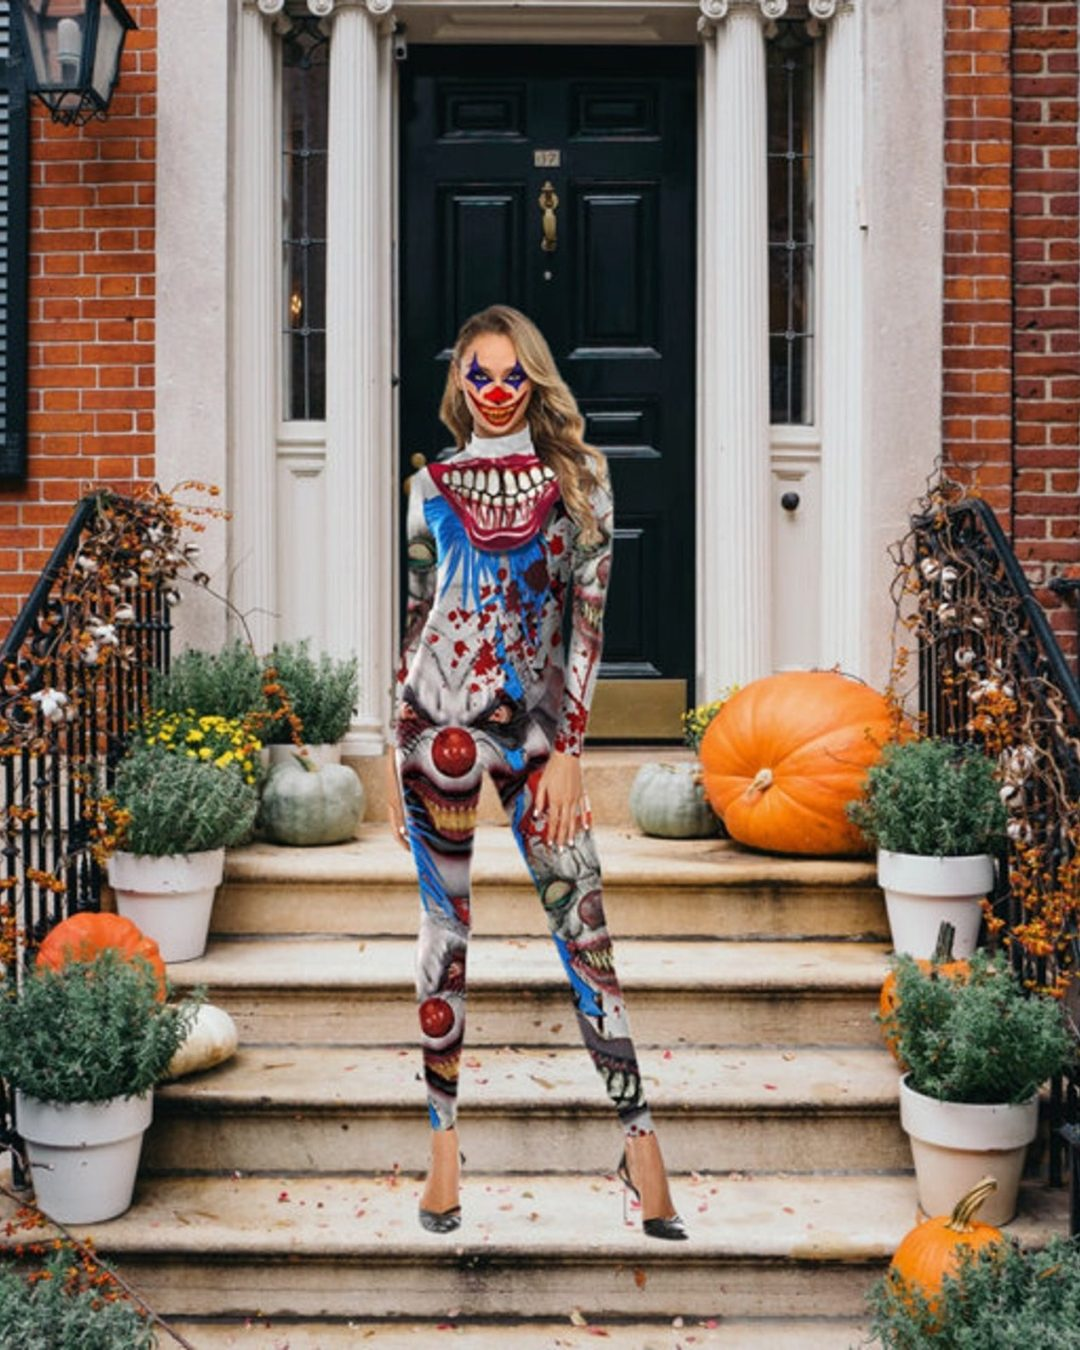 Scary Clown Jumpsuit Halloween costume for women